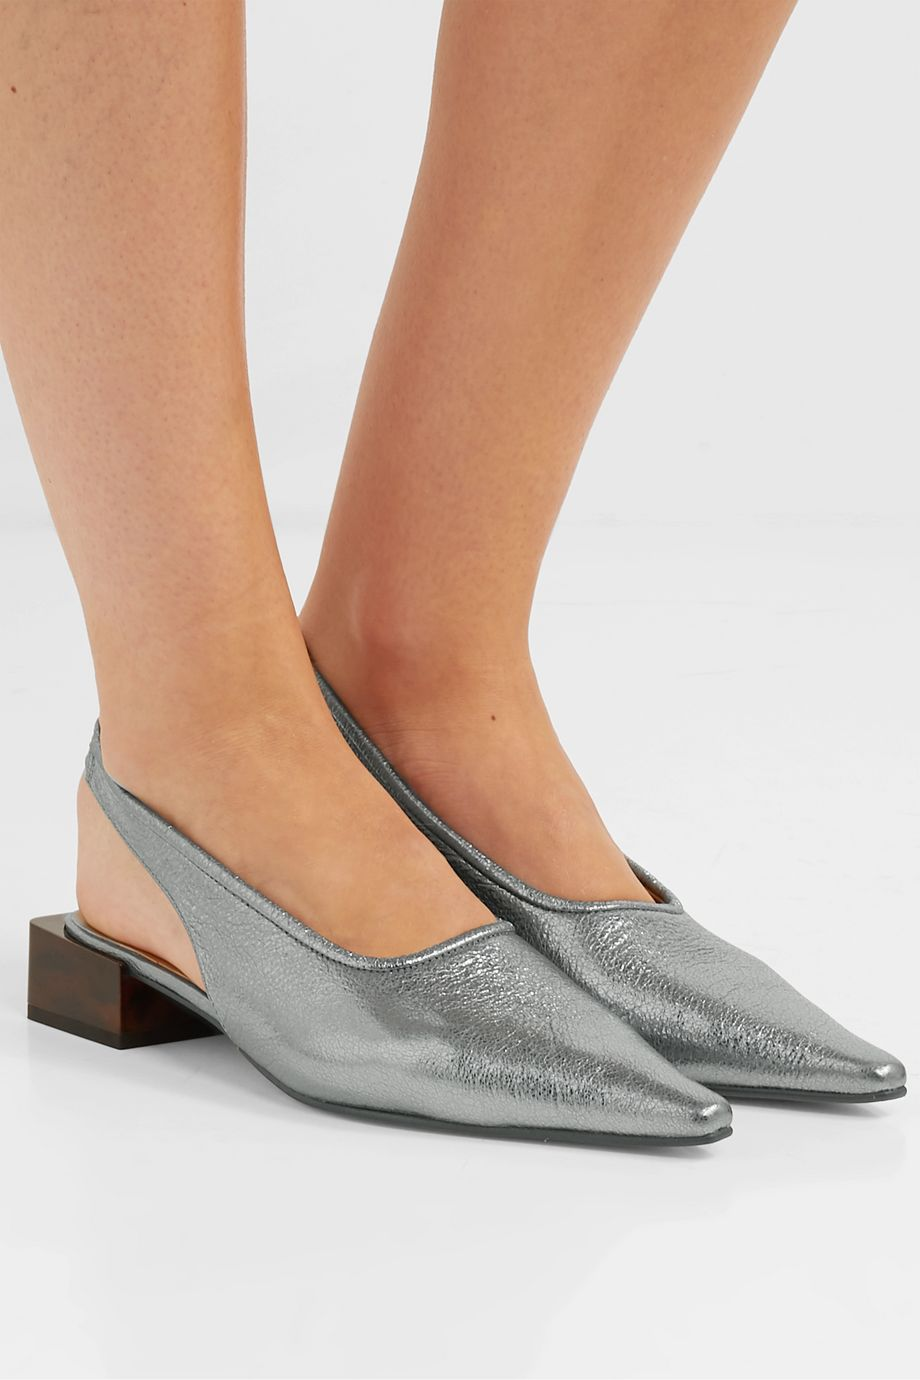 GANNI Slingback-Pumps aus Leder in Metallic-Optik